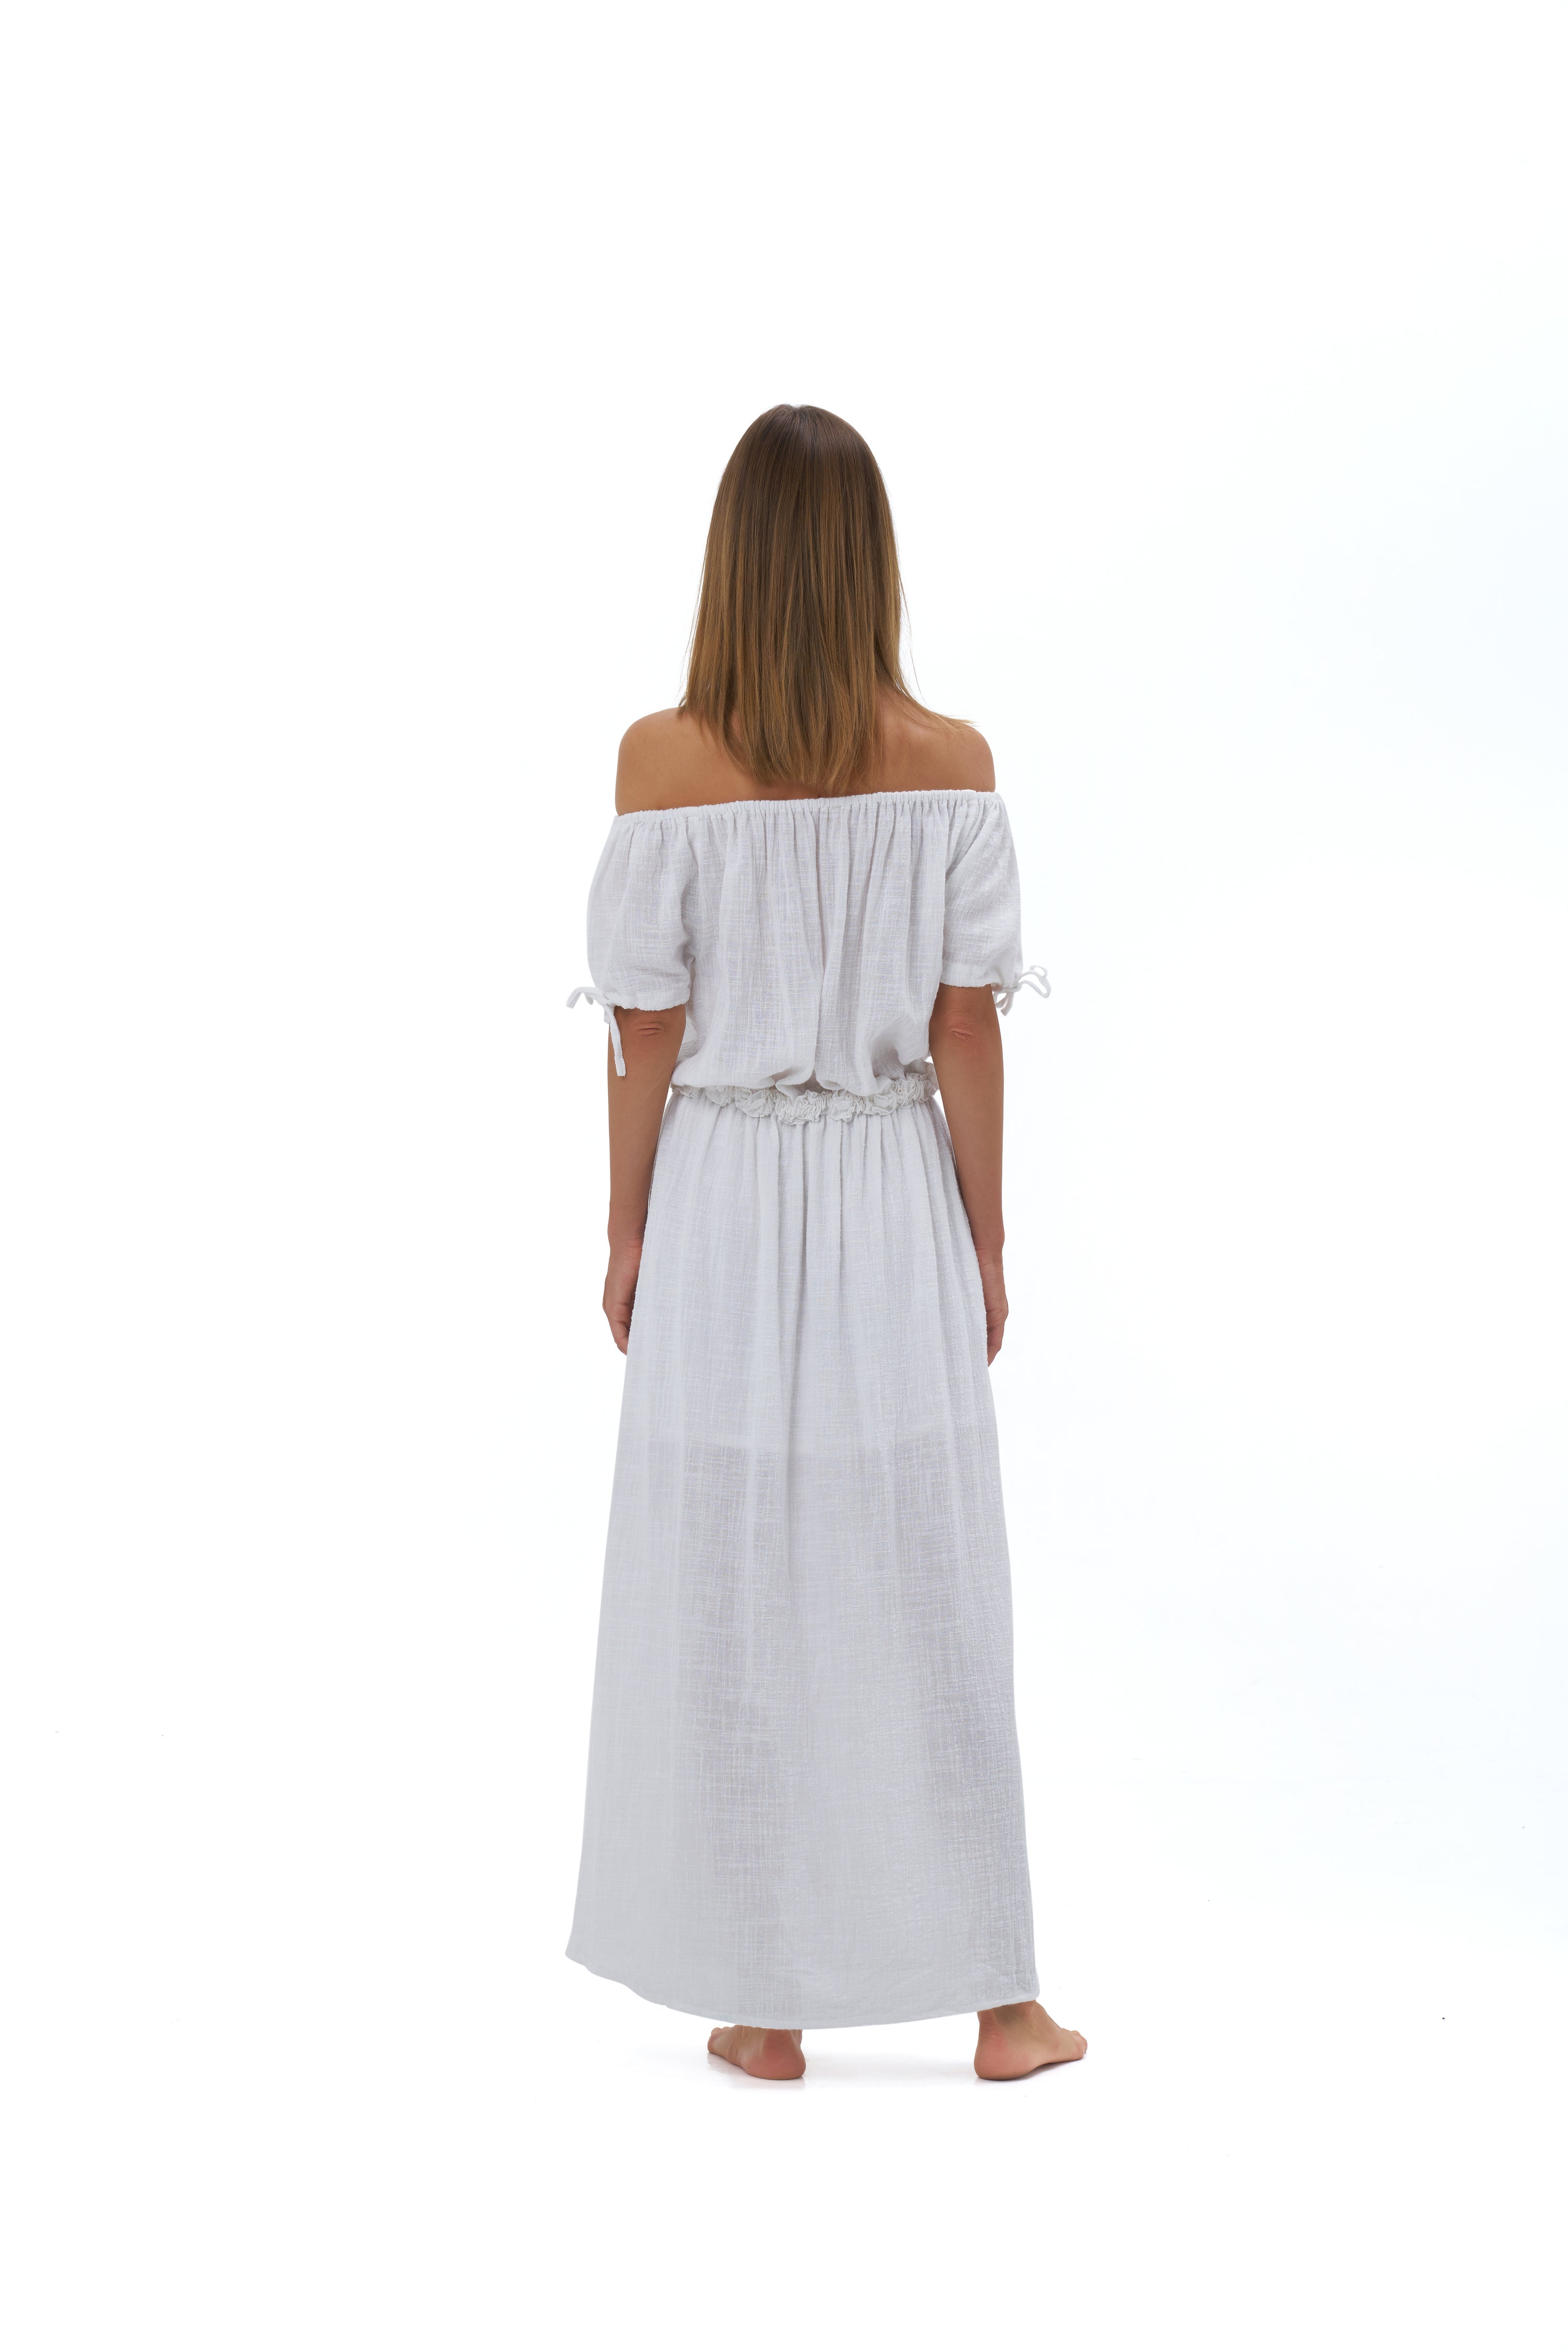 THE JULIETTE MAXI DRESS | WHITE